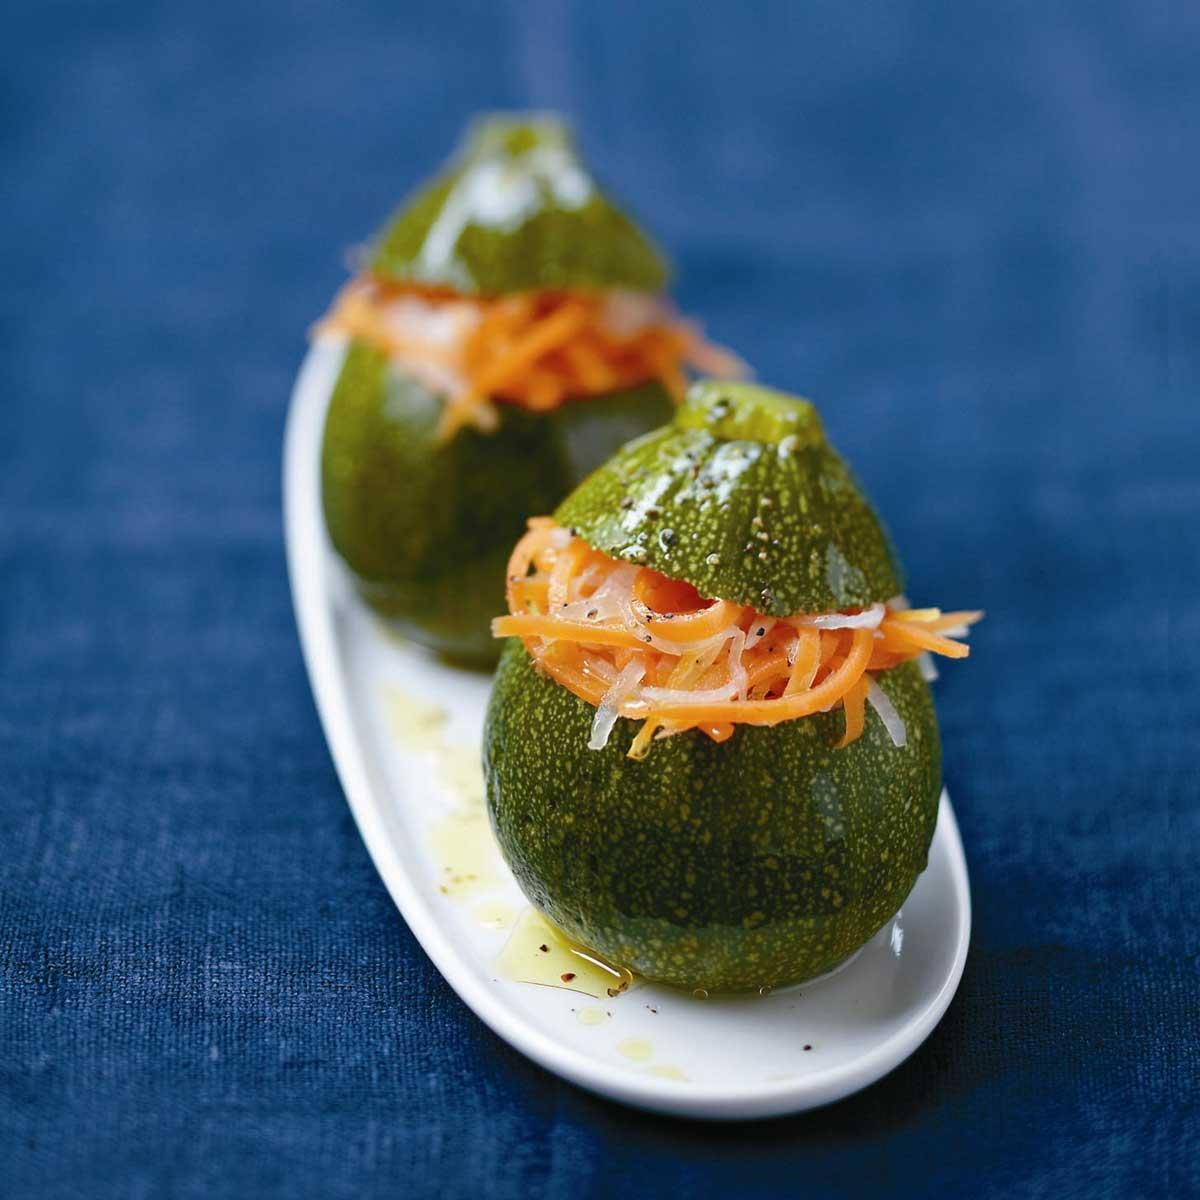 Recette courgettes rondes farcies - Cuisine / Madame Figaro on